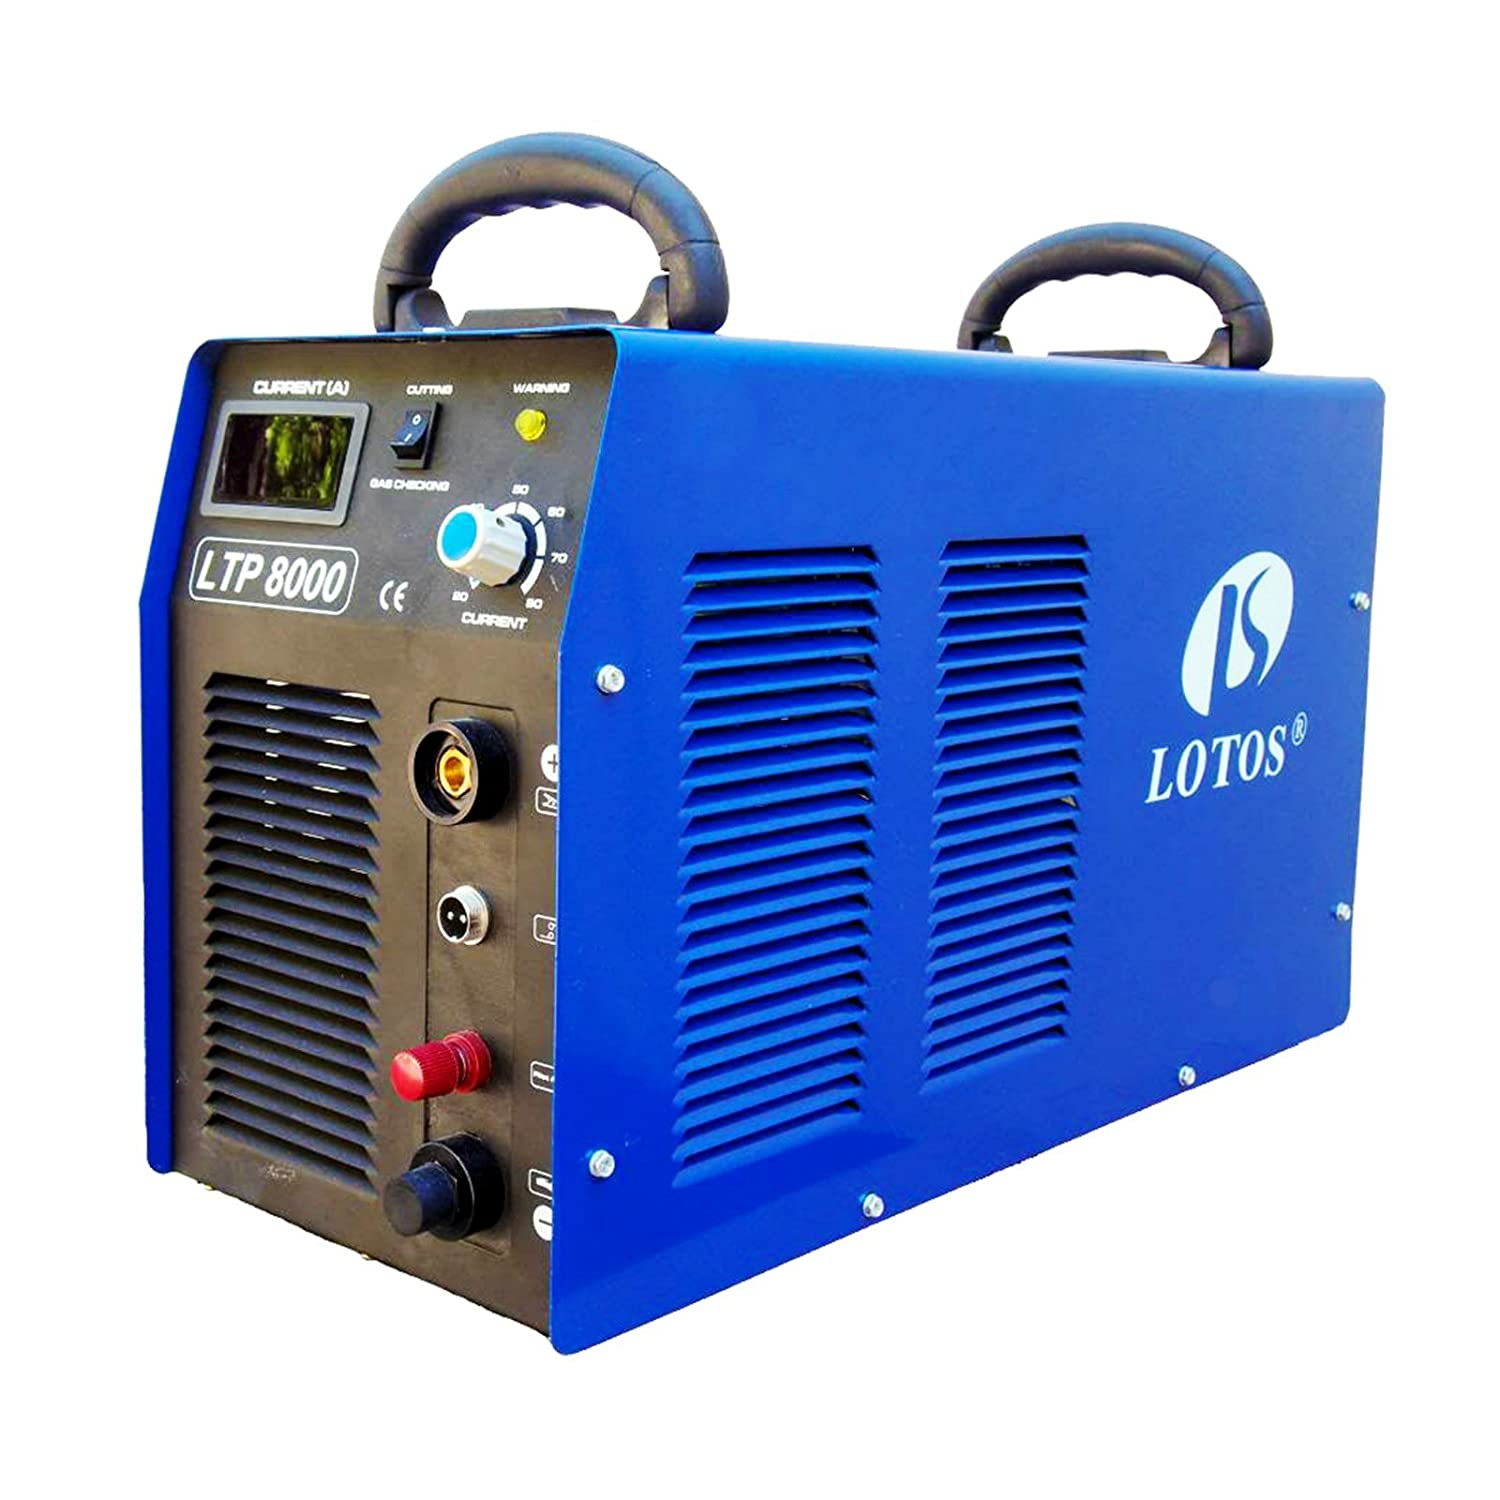 Lotos Technology LTP8000